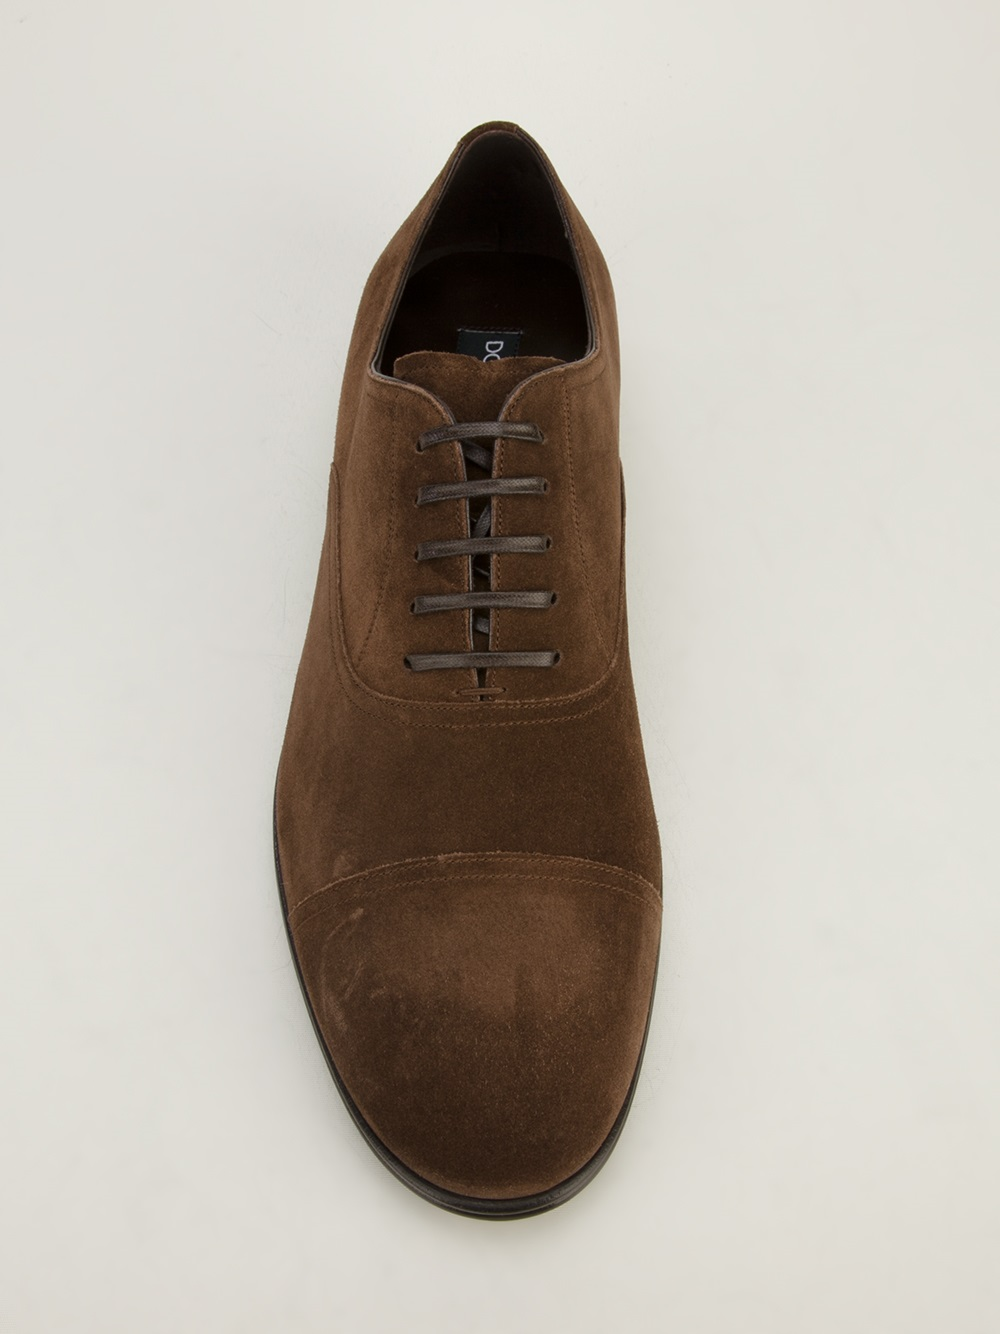 Oxford brogues - Brown Dolce & Gabbana Sale How Much 2018 New Cheap Online Best Place Inexpensive Online tvMel